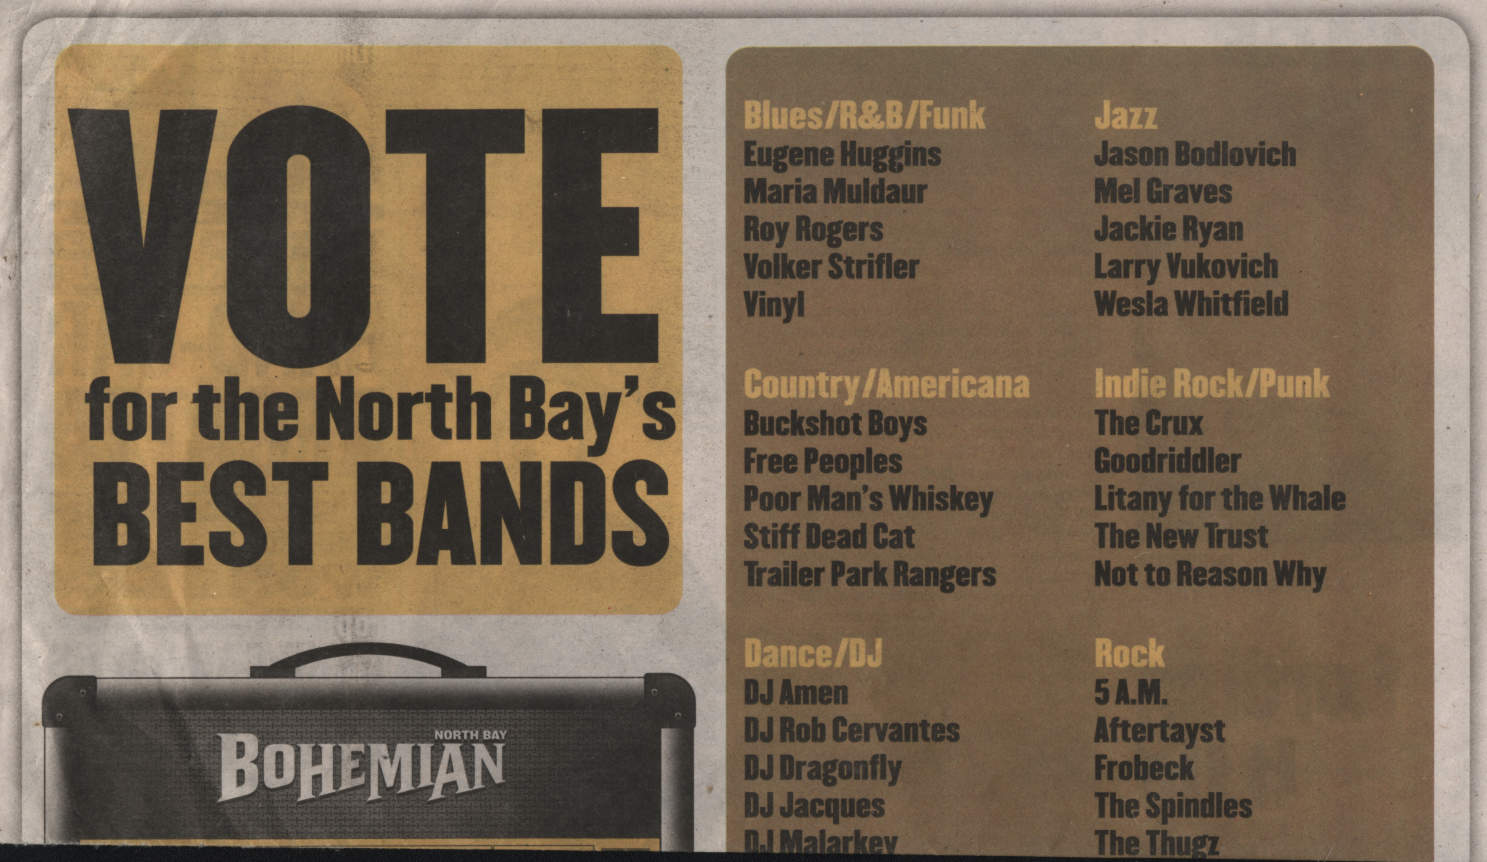 Vote for the North Bay's Best Bands